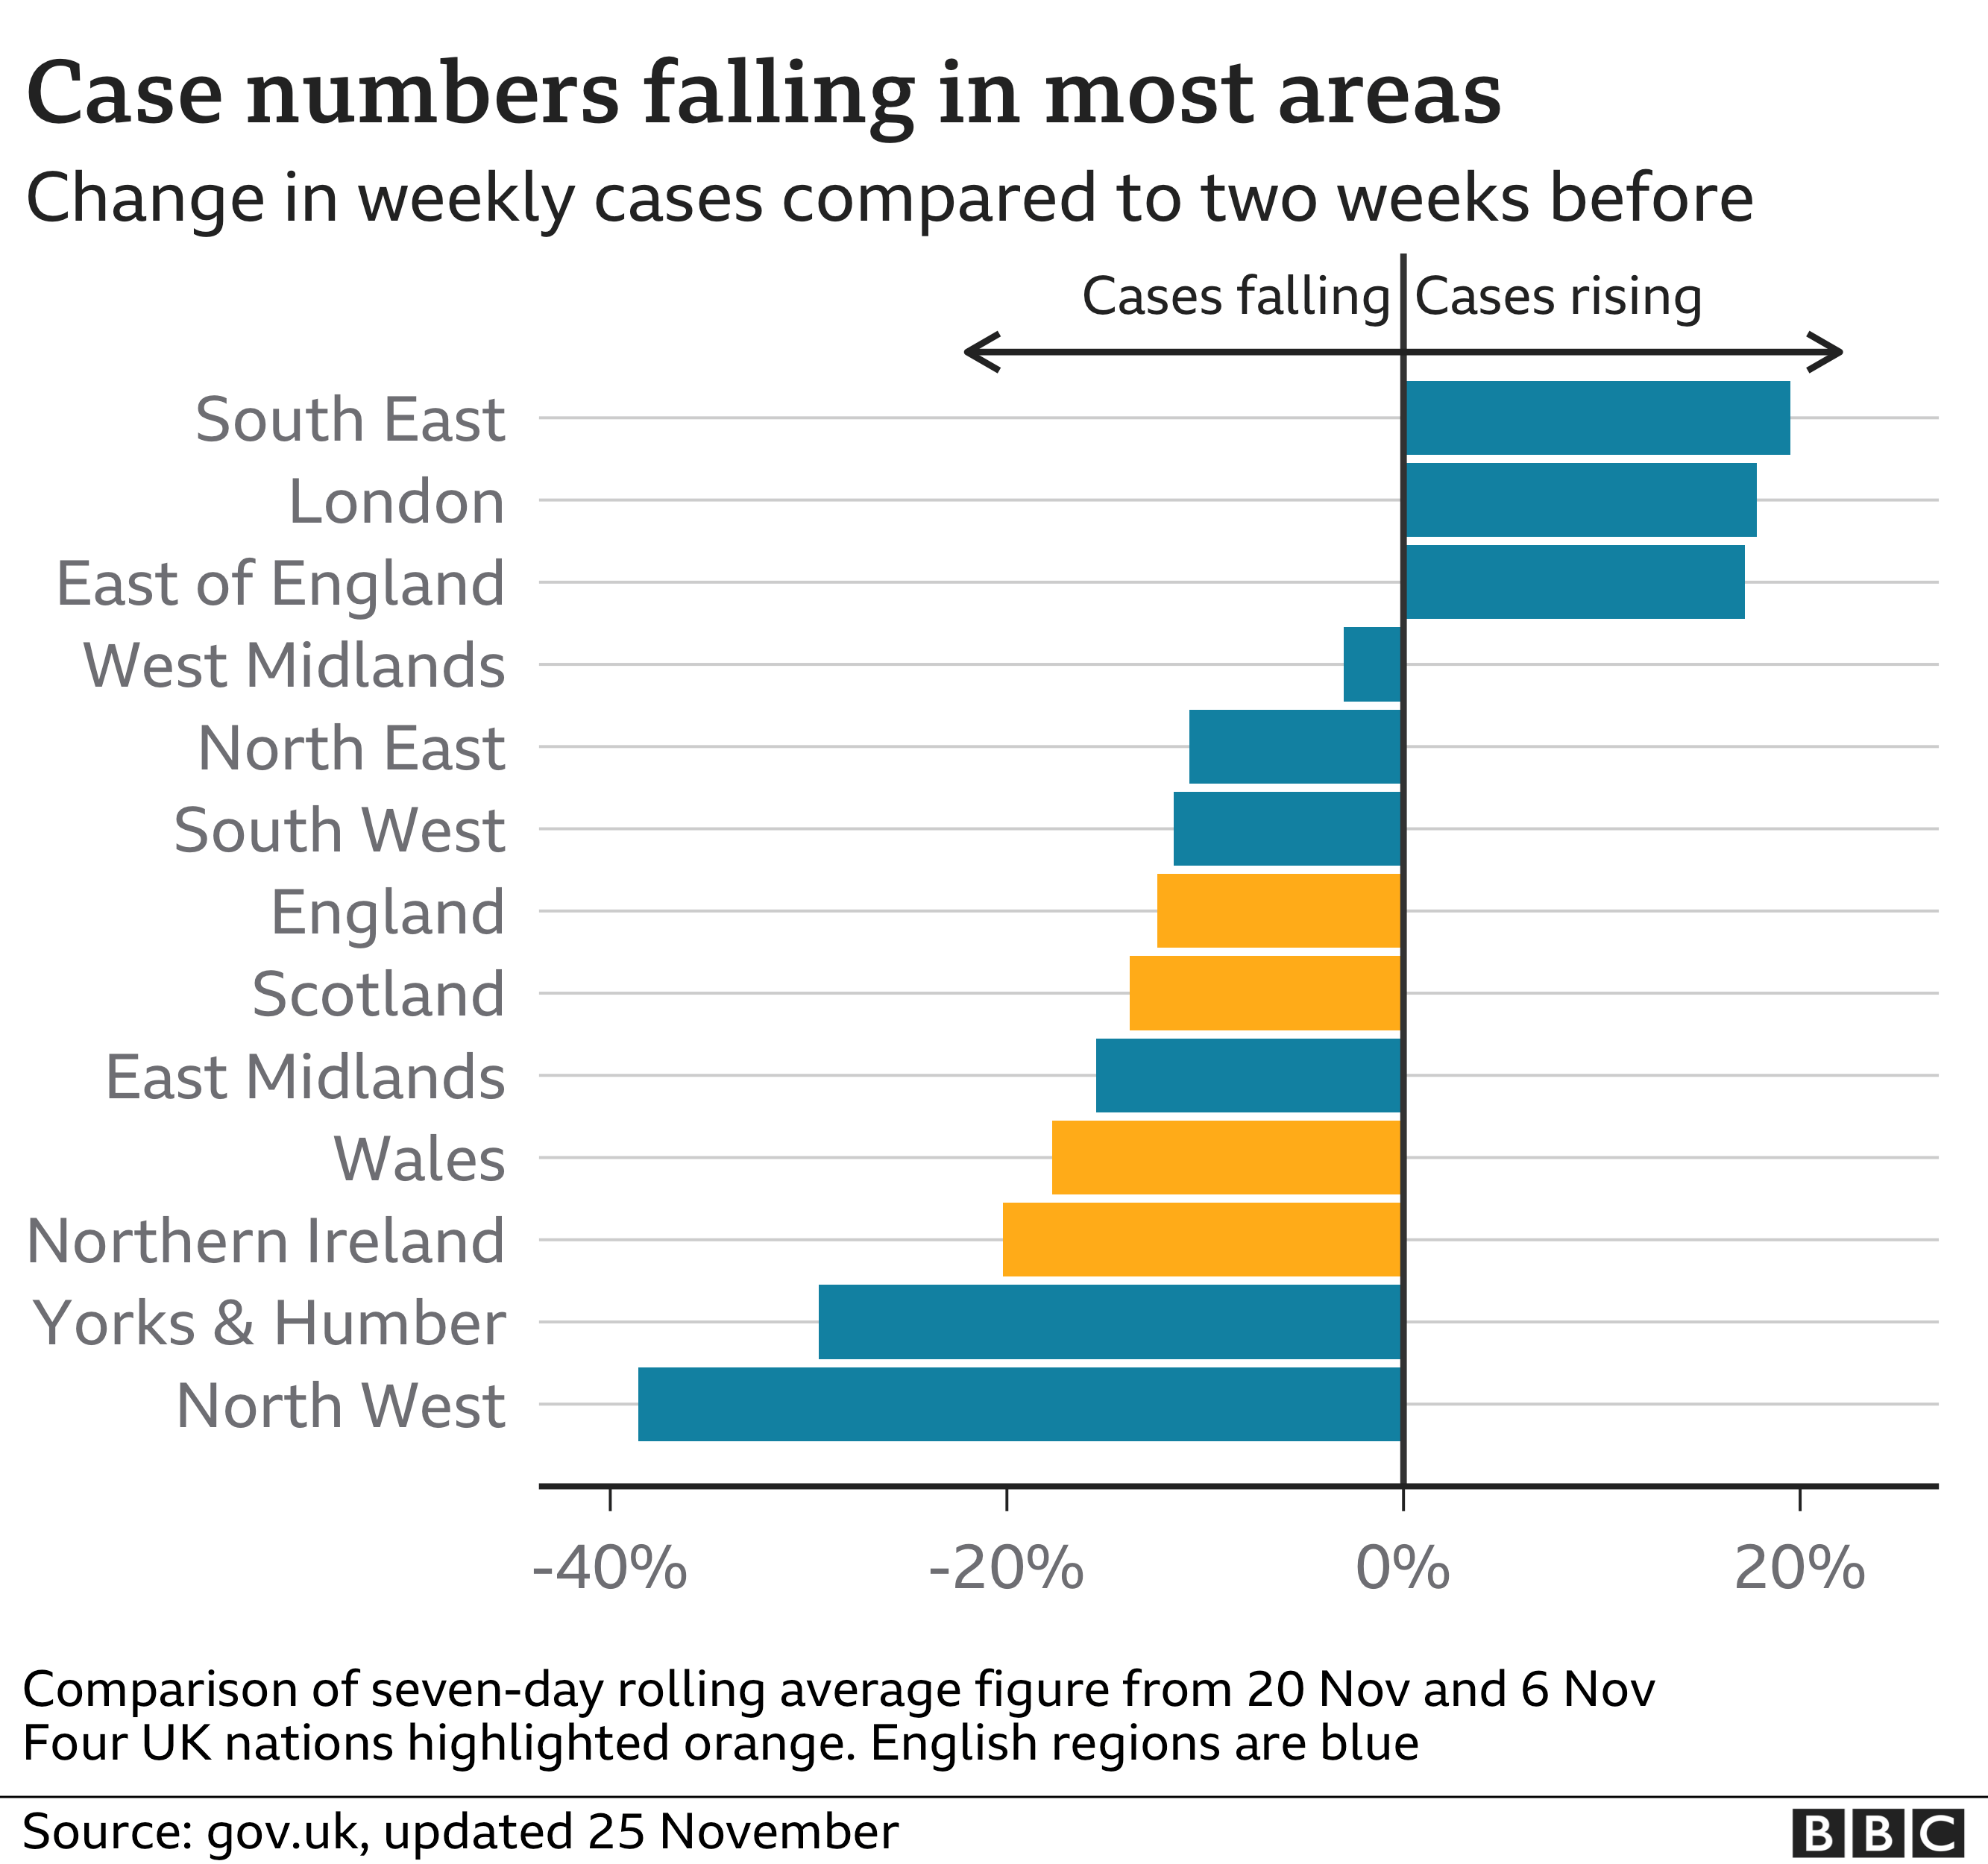 Chart showing how case numbers are falling in most regions